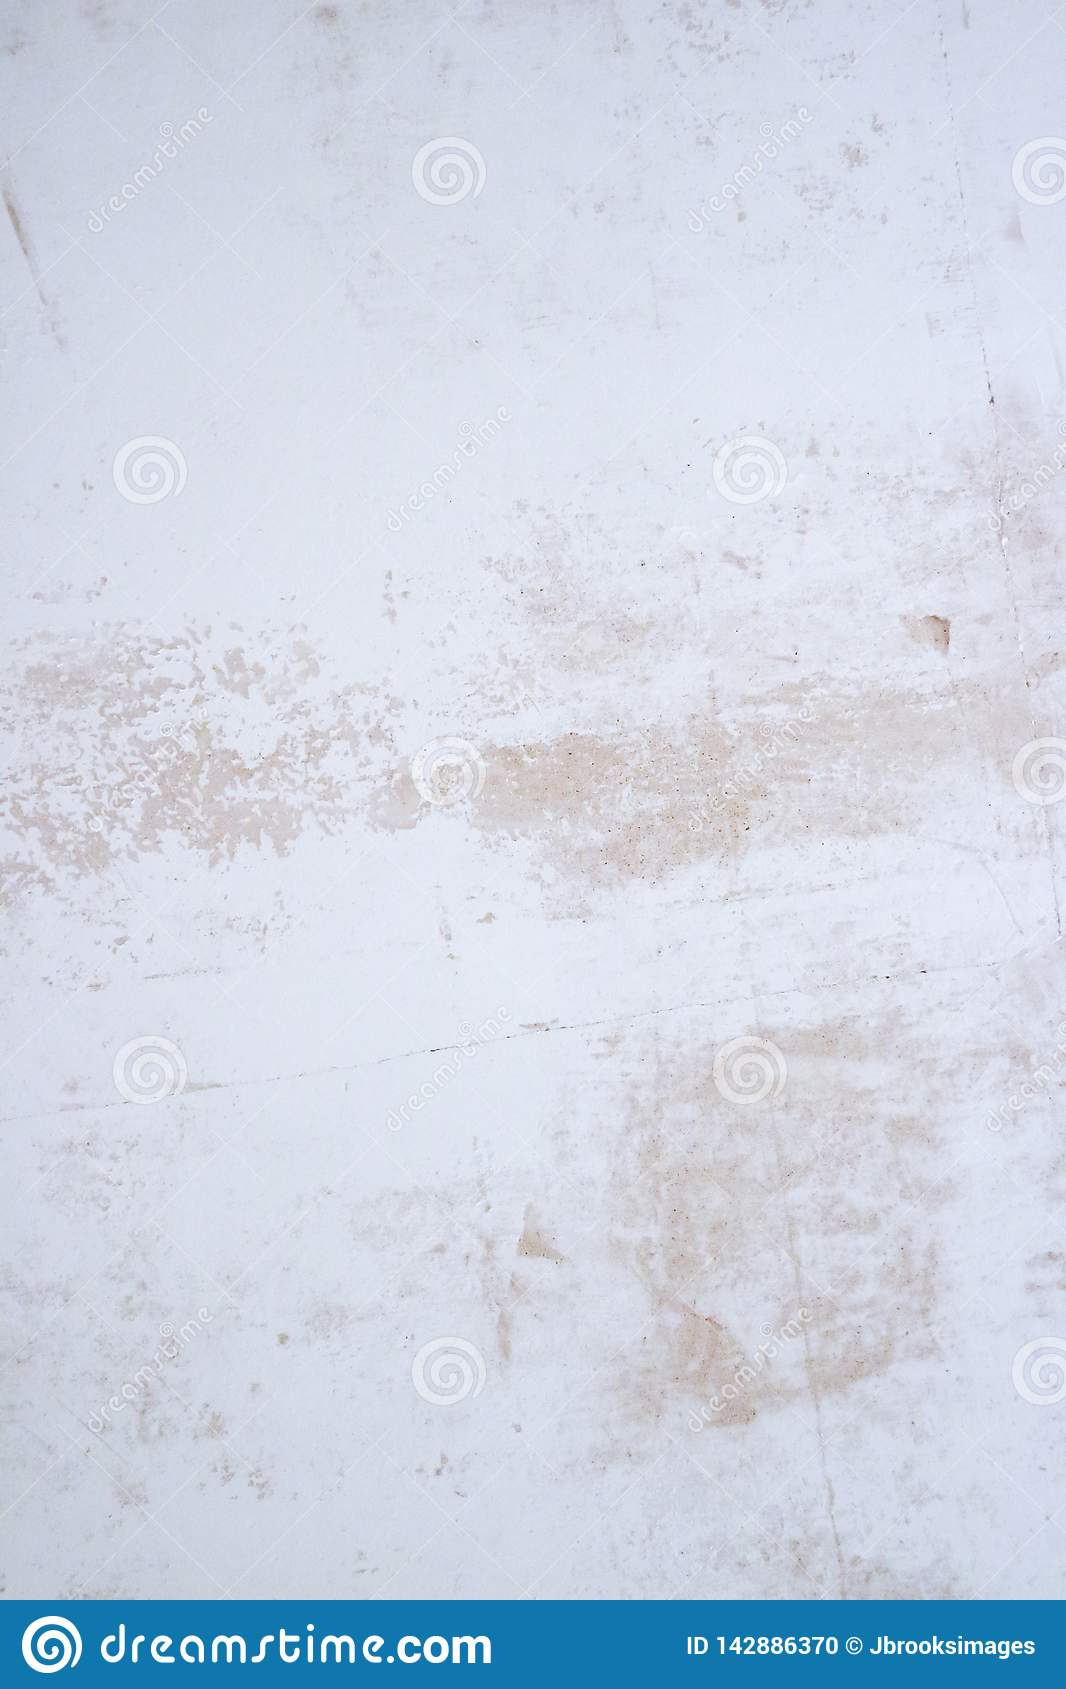 Plastered wall texture with flakes of paint and filler. Sanded surface with imperfections.